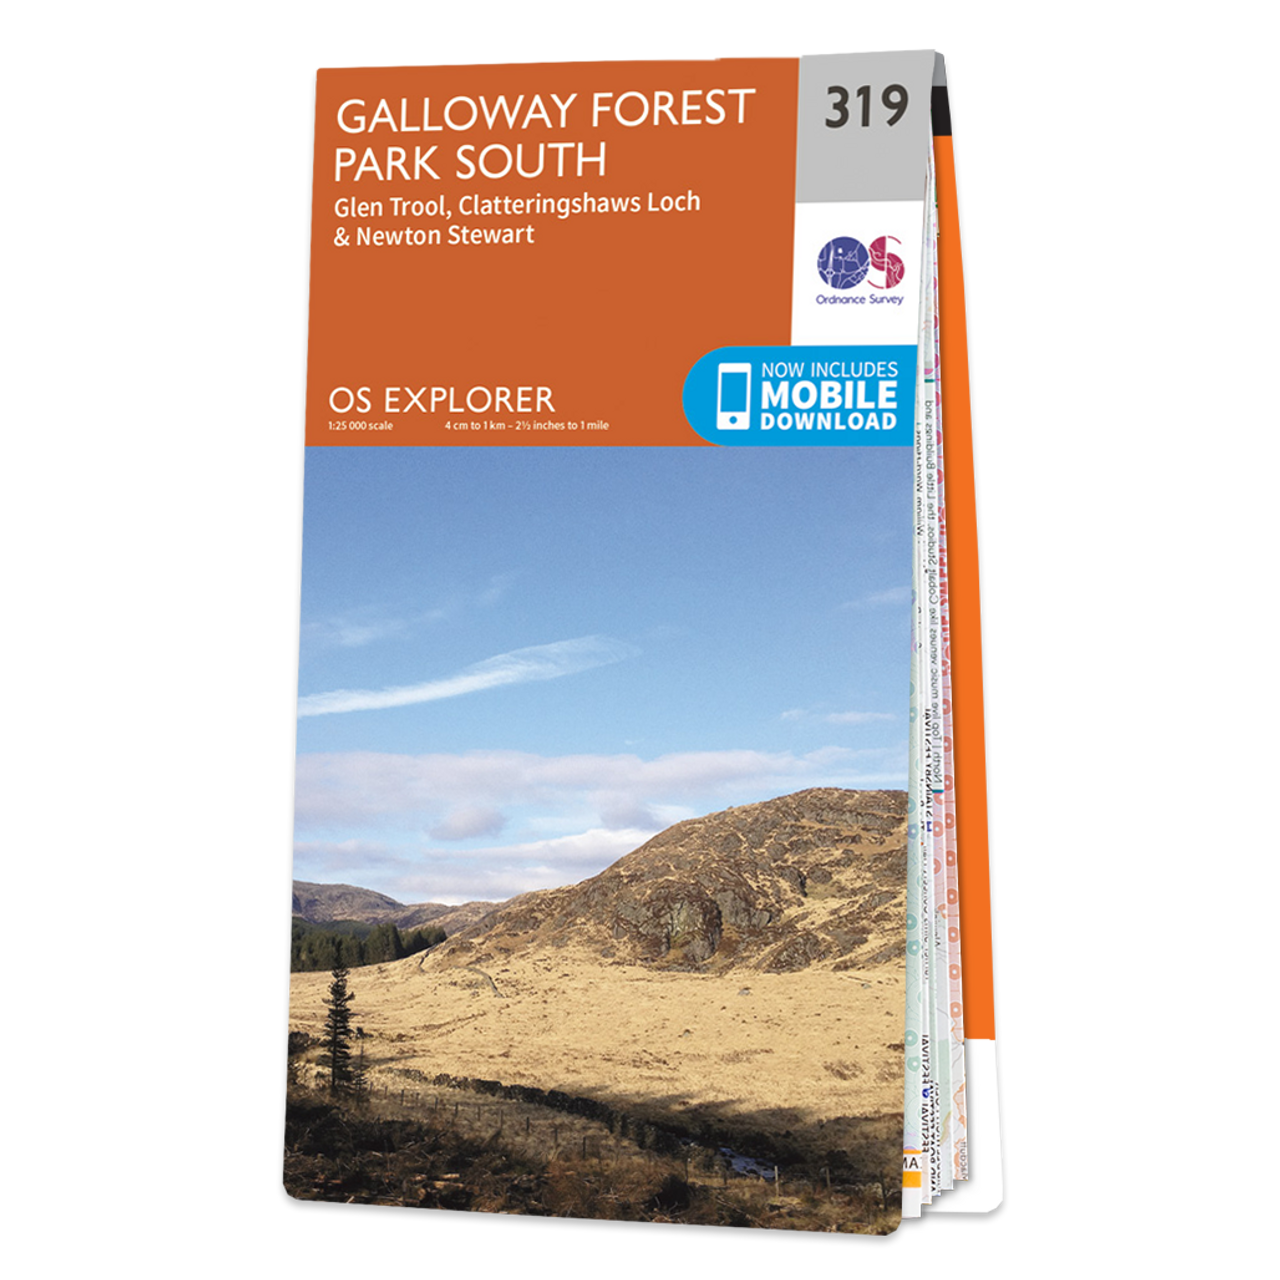 Map Of Galloway Forest Park South